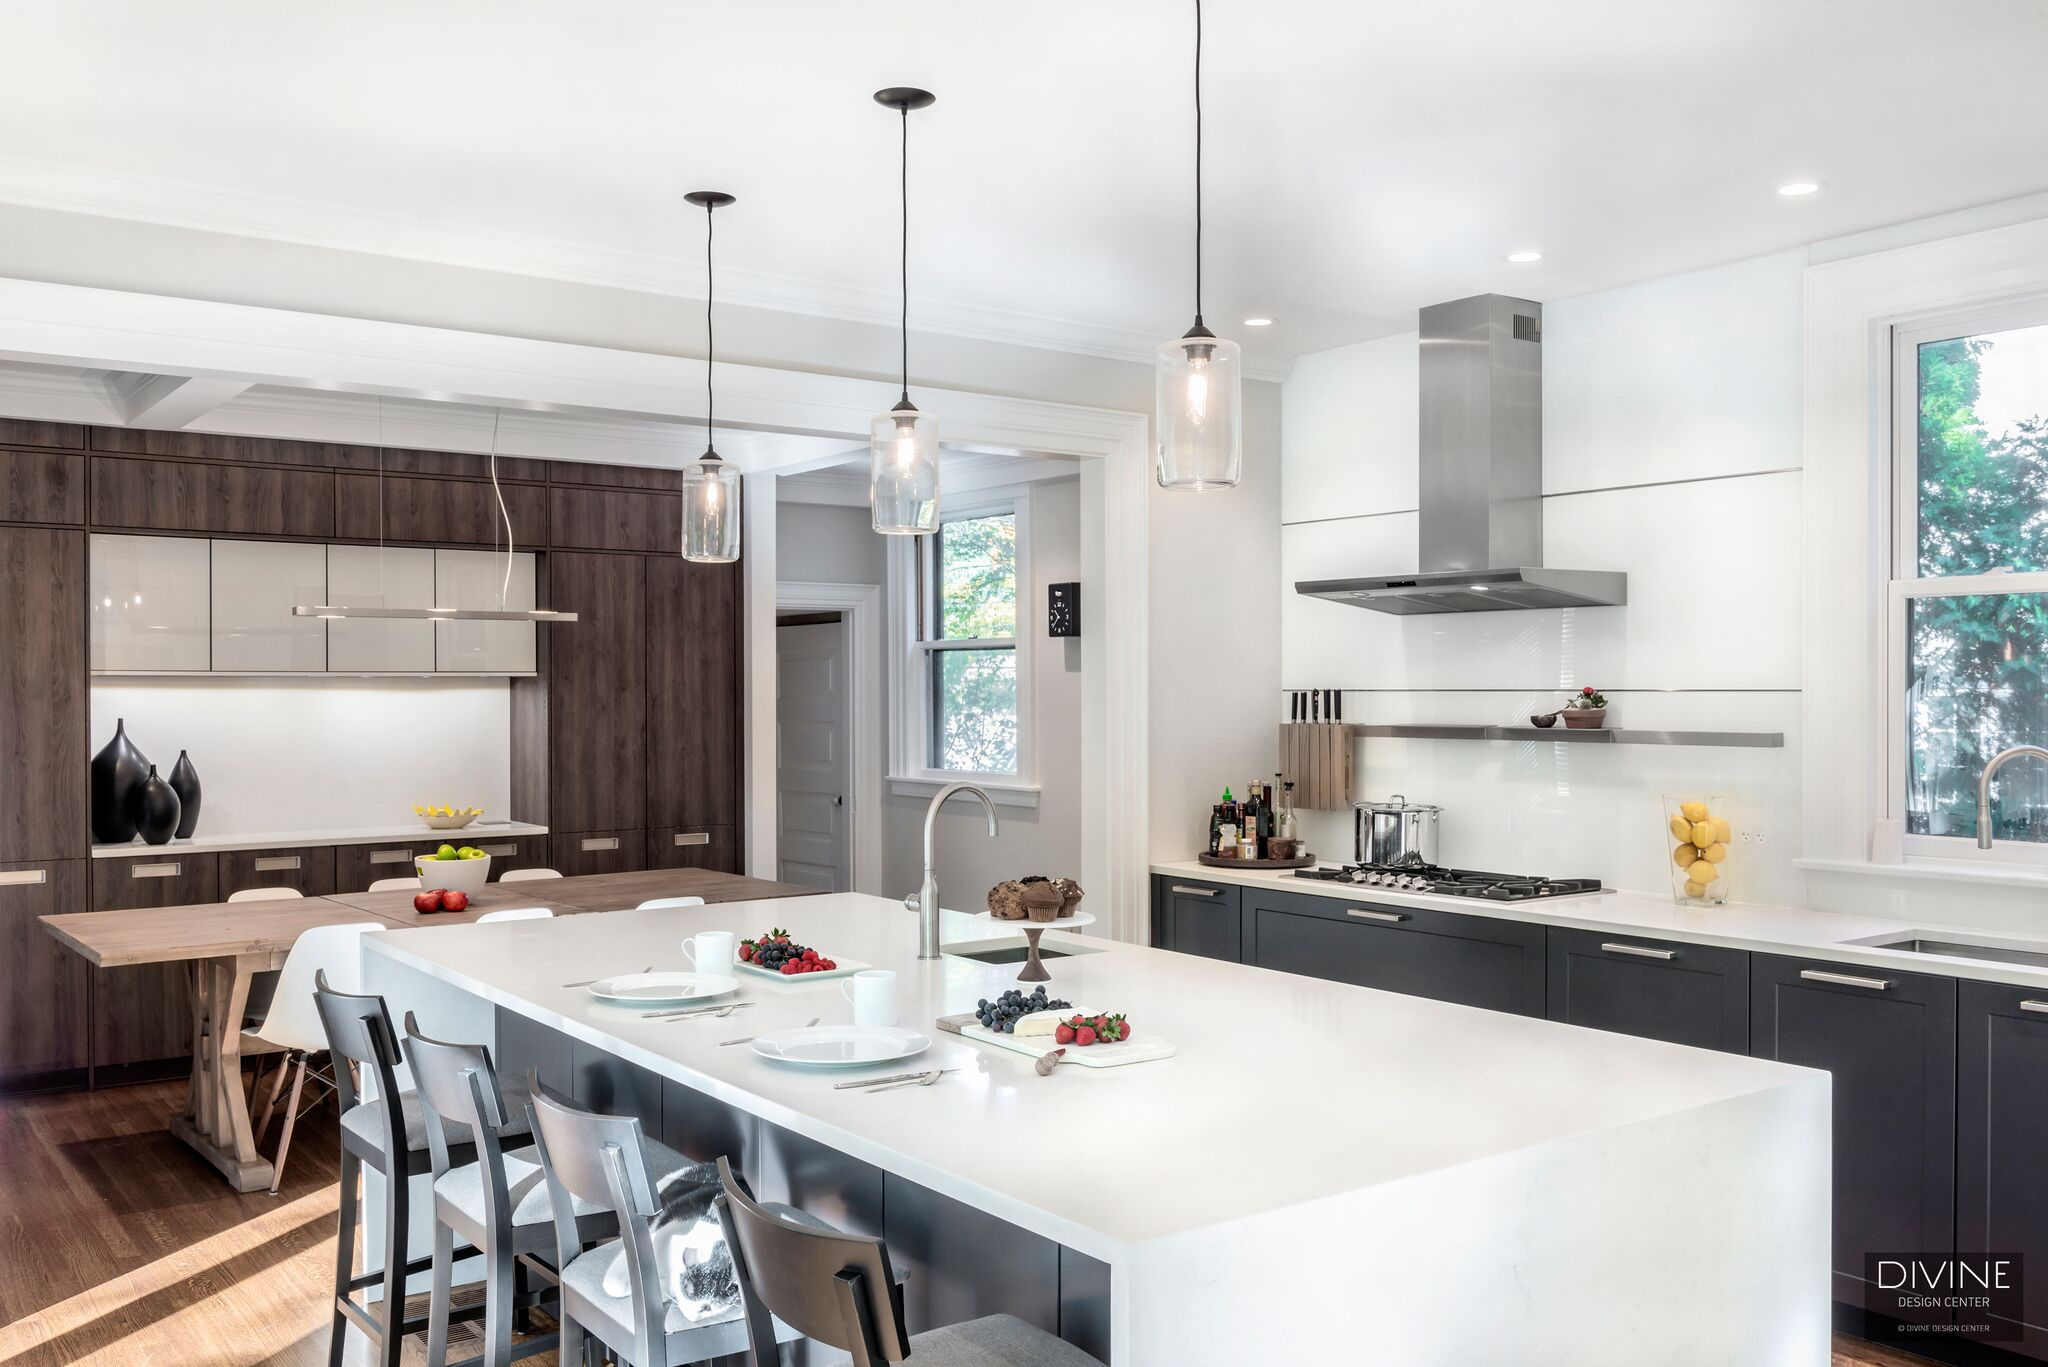 Kitchens Guide 2016: Six Stunning Local Kitchens